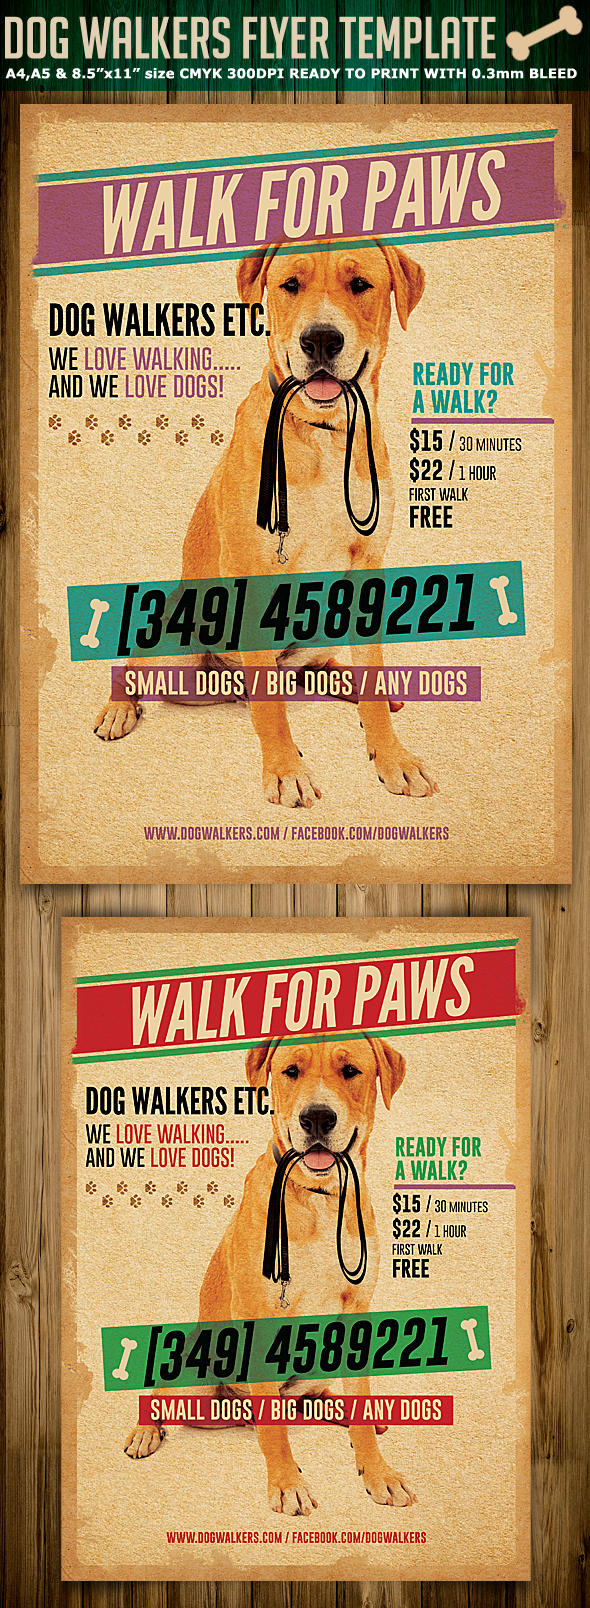 Dog walkers flyer template 2 on behance for Dog walking flyer template free